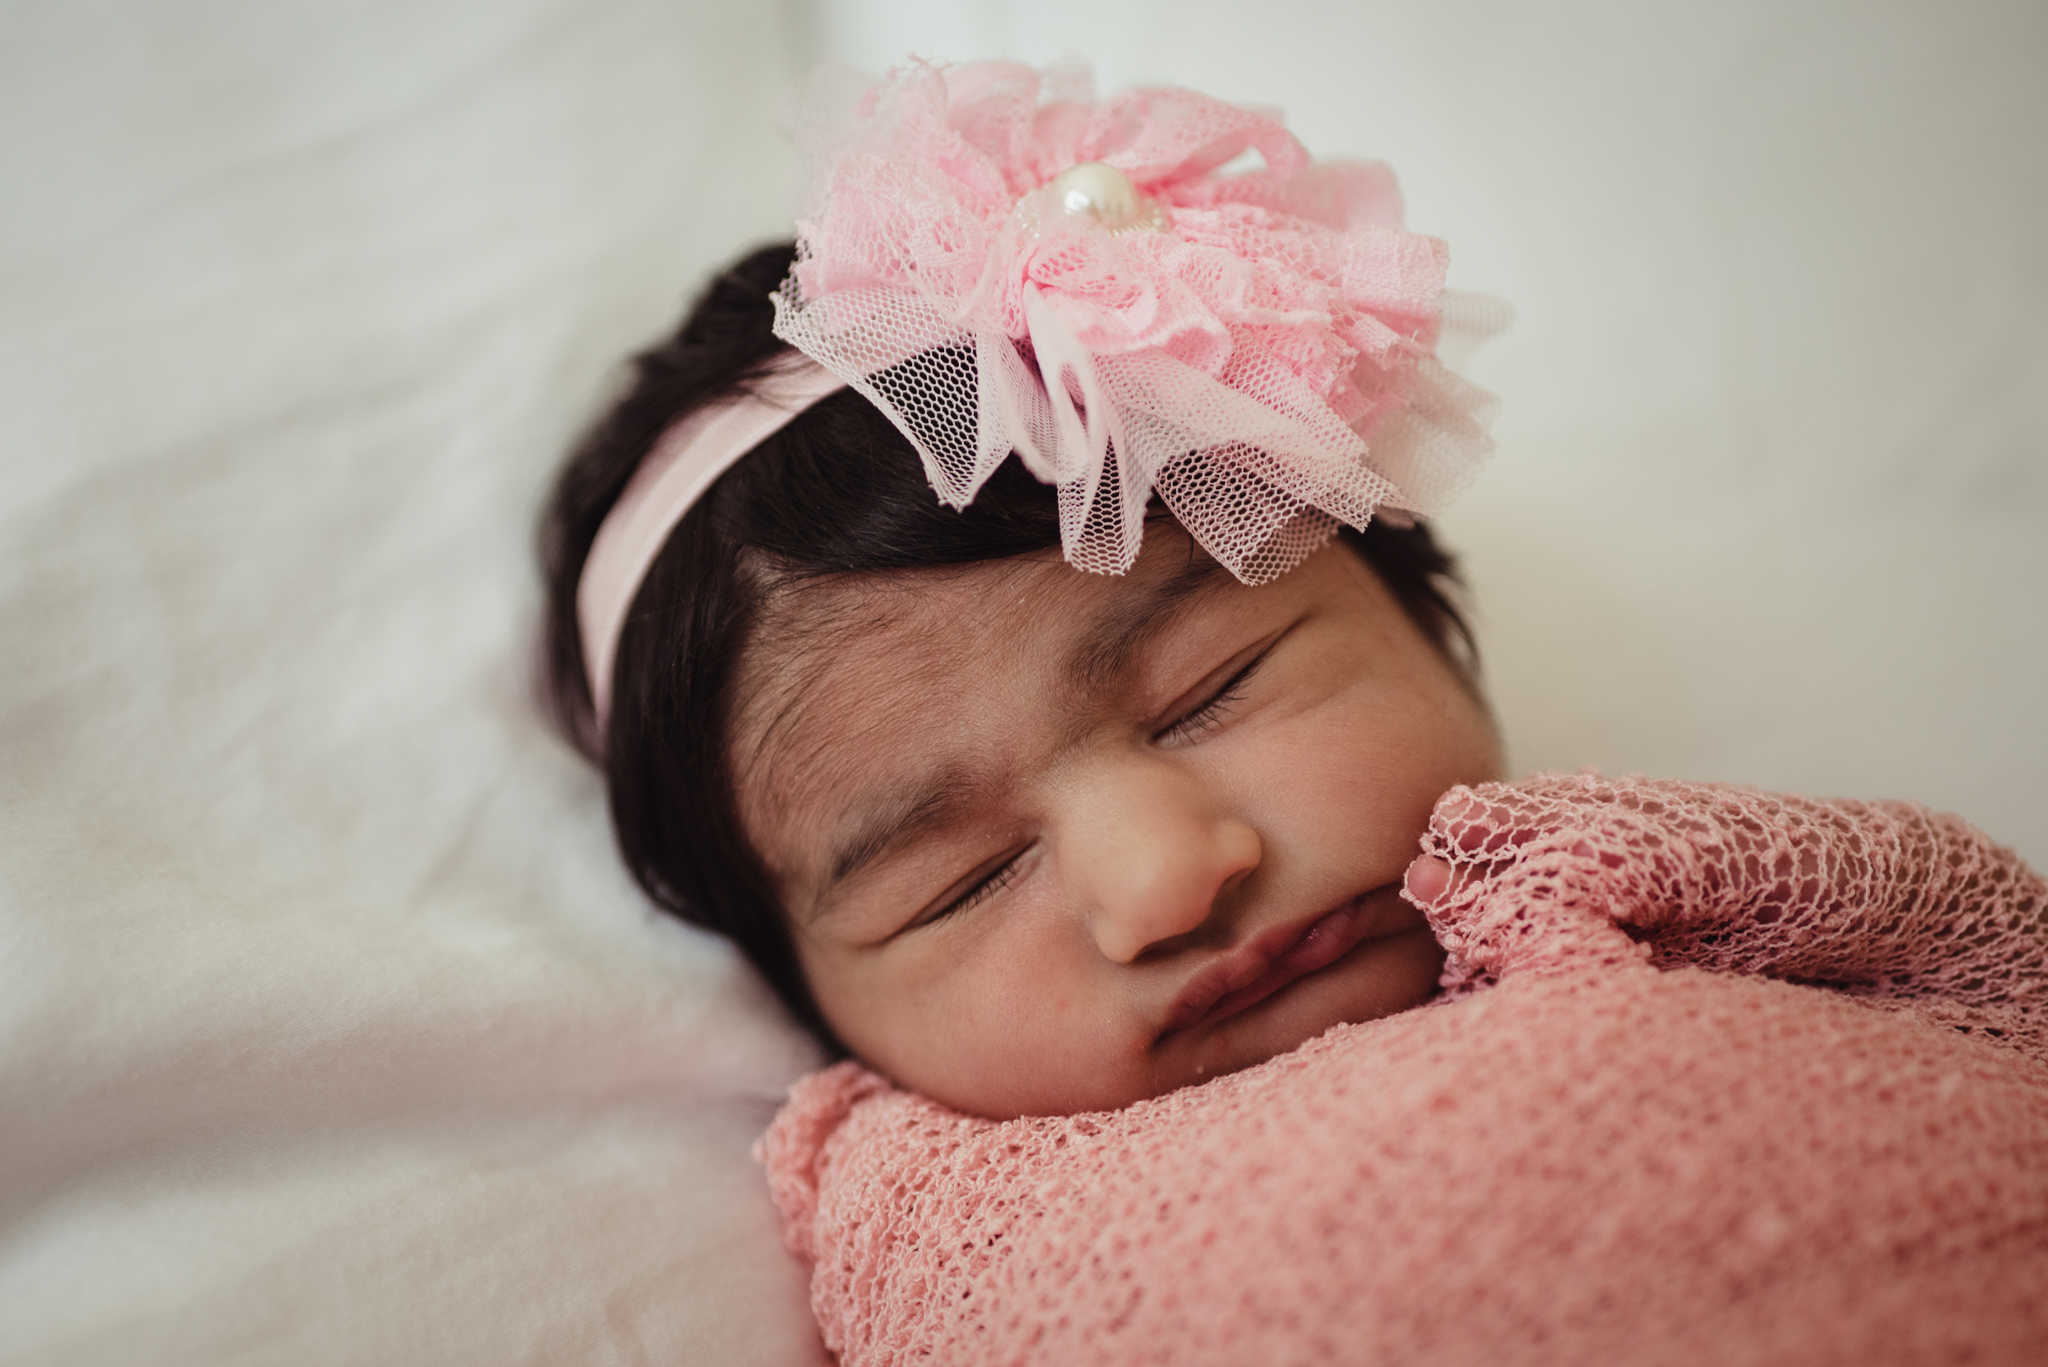 The newborn baby girl sleeps on her parents' bed during her lifestyle newborn session with Rose Trail Images in Raleigh, North Carolina.